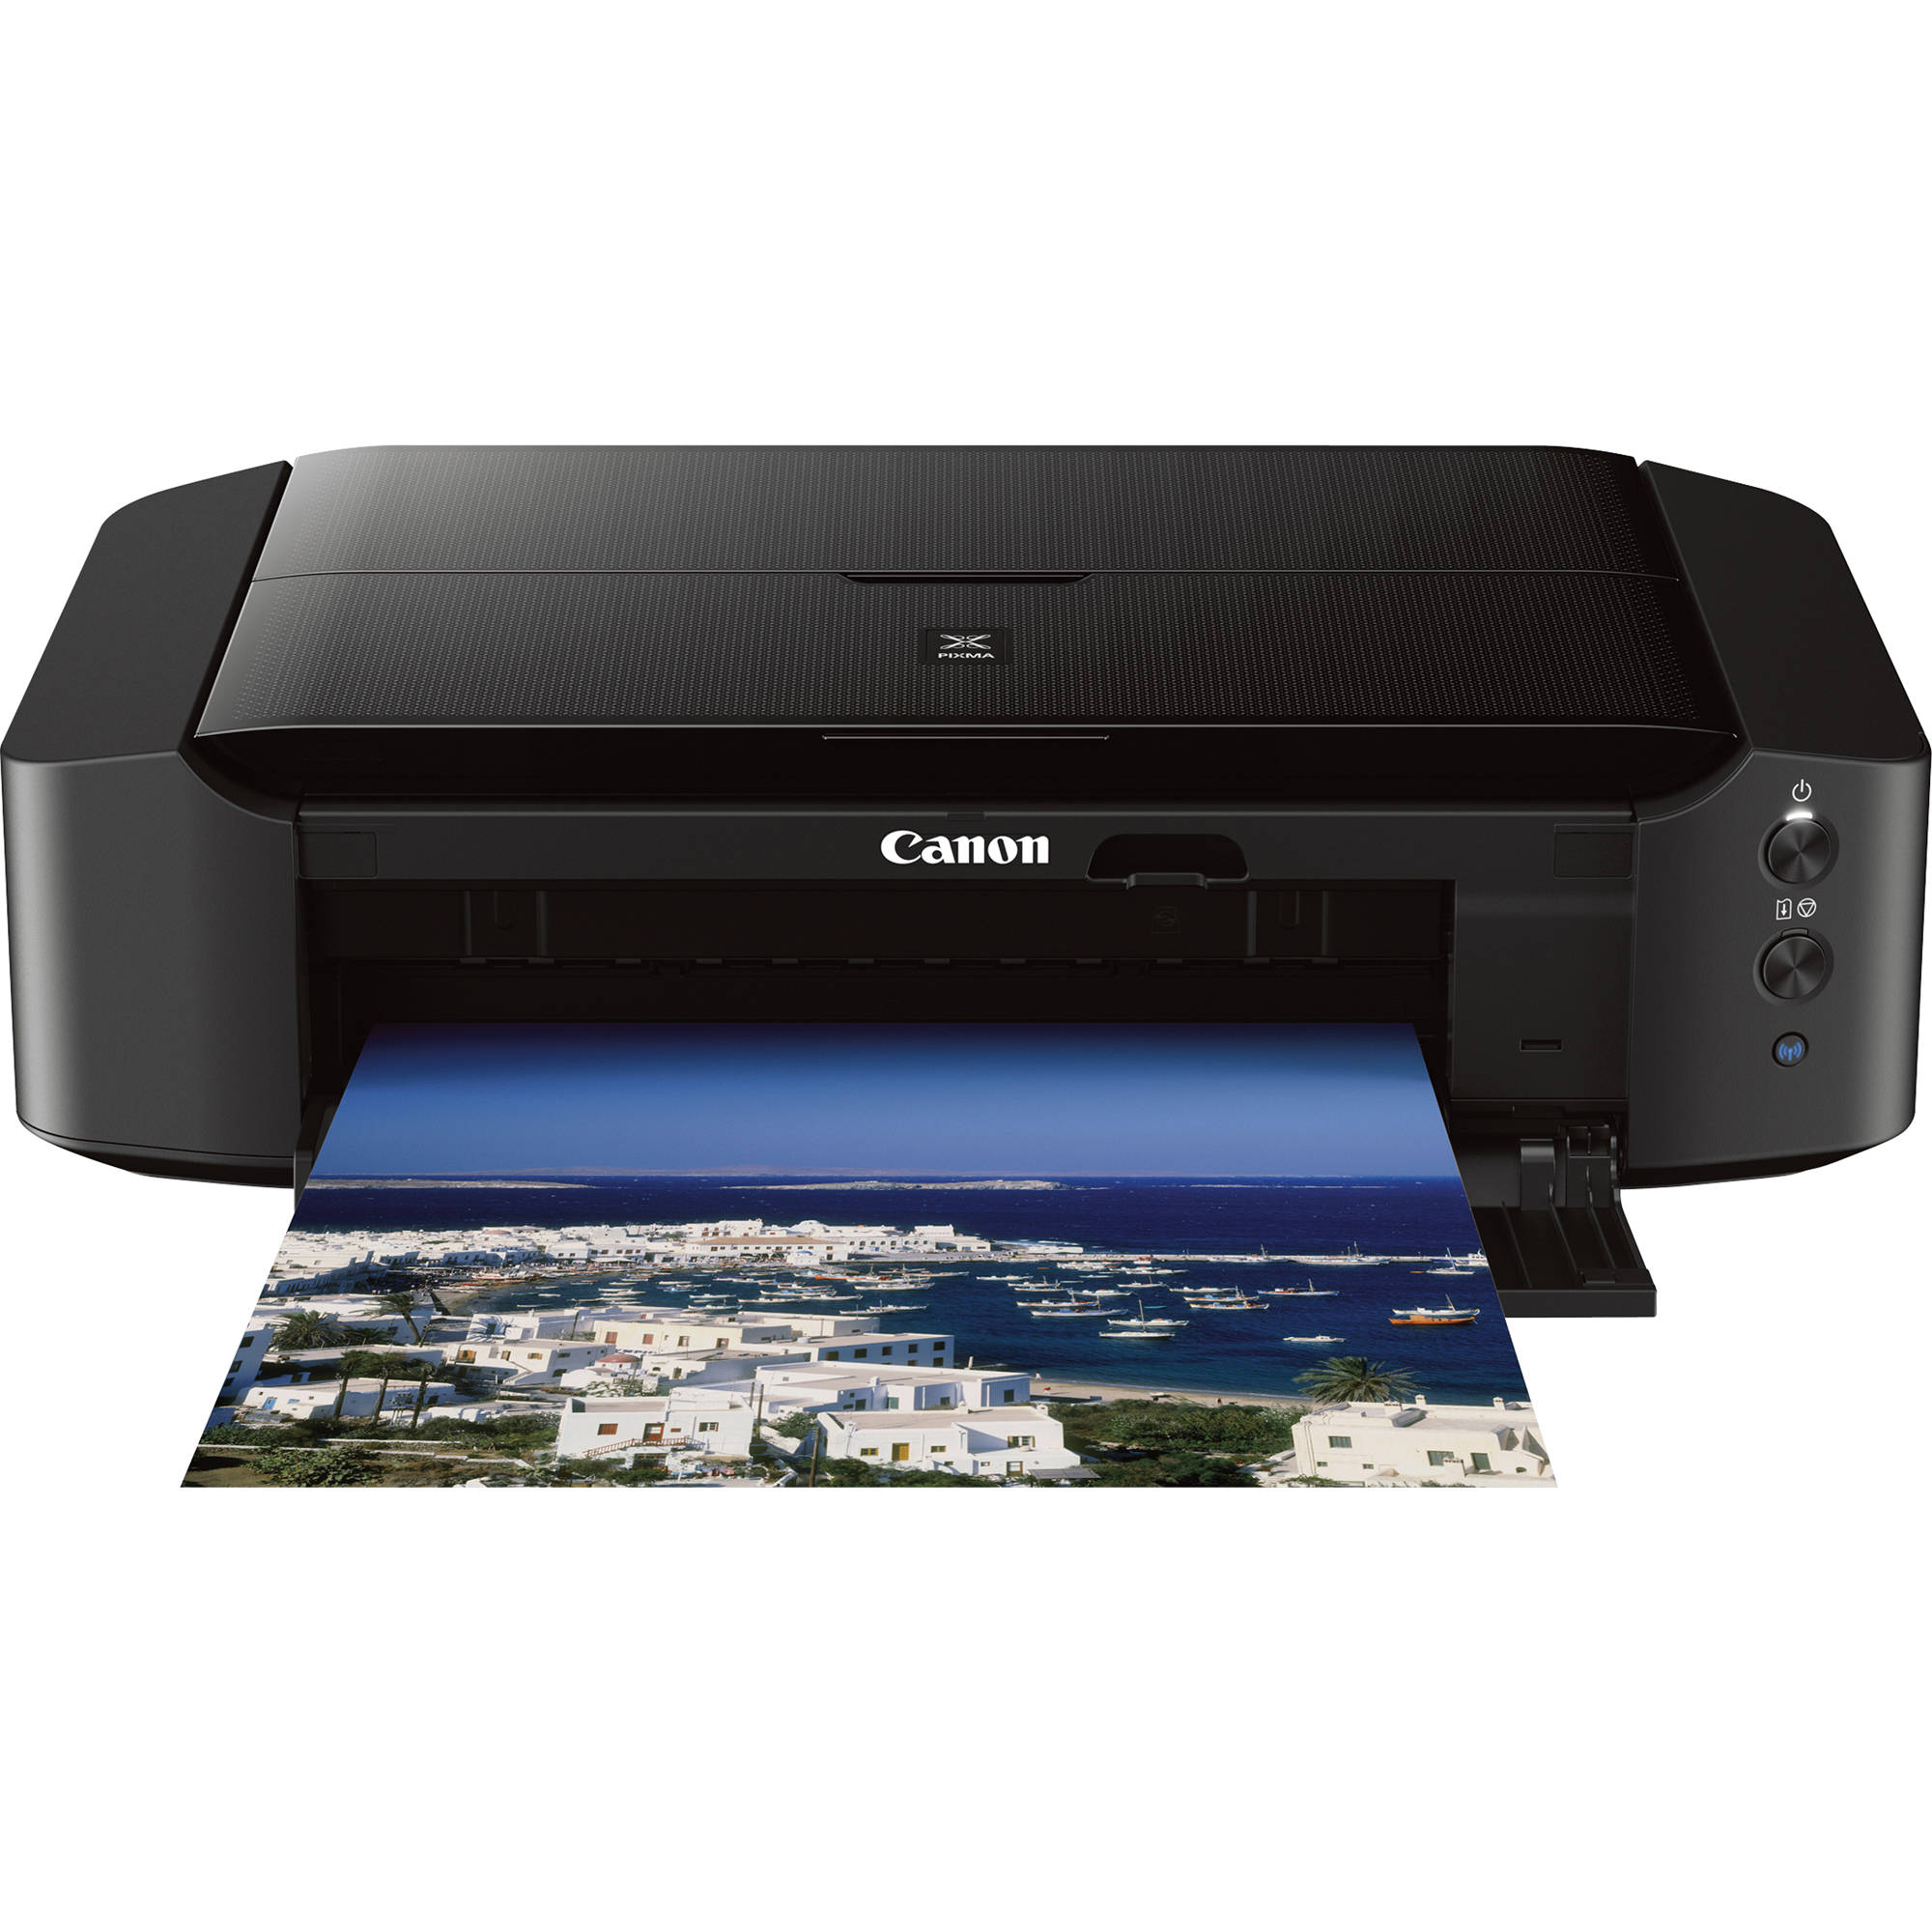 canon pixma ip8720 wireless inkjet photo printer 8746b002 b h